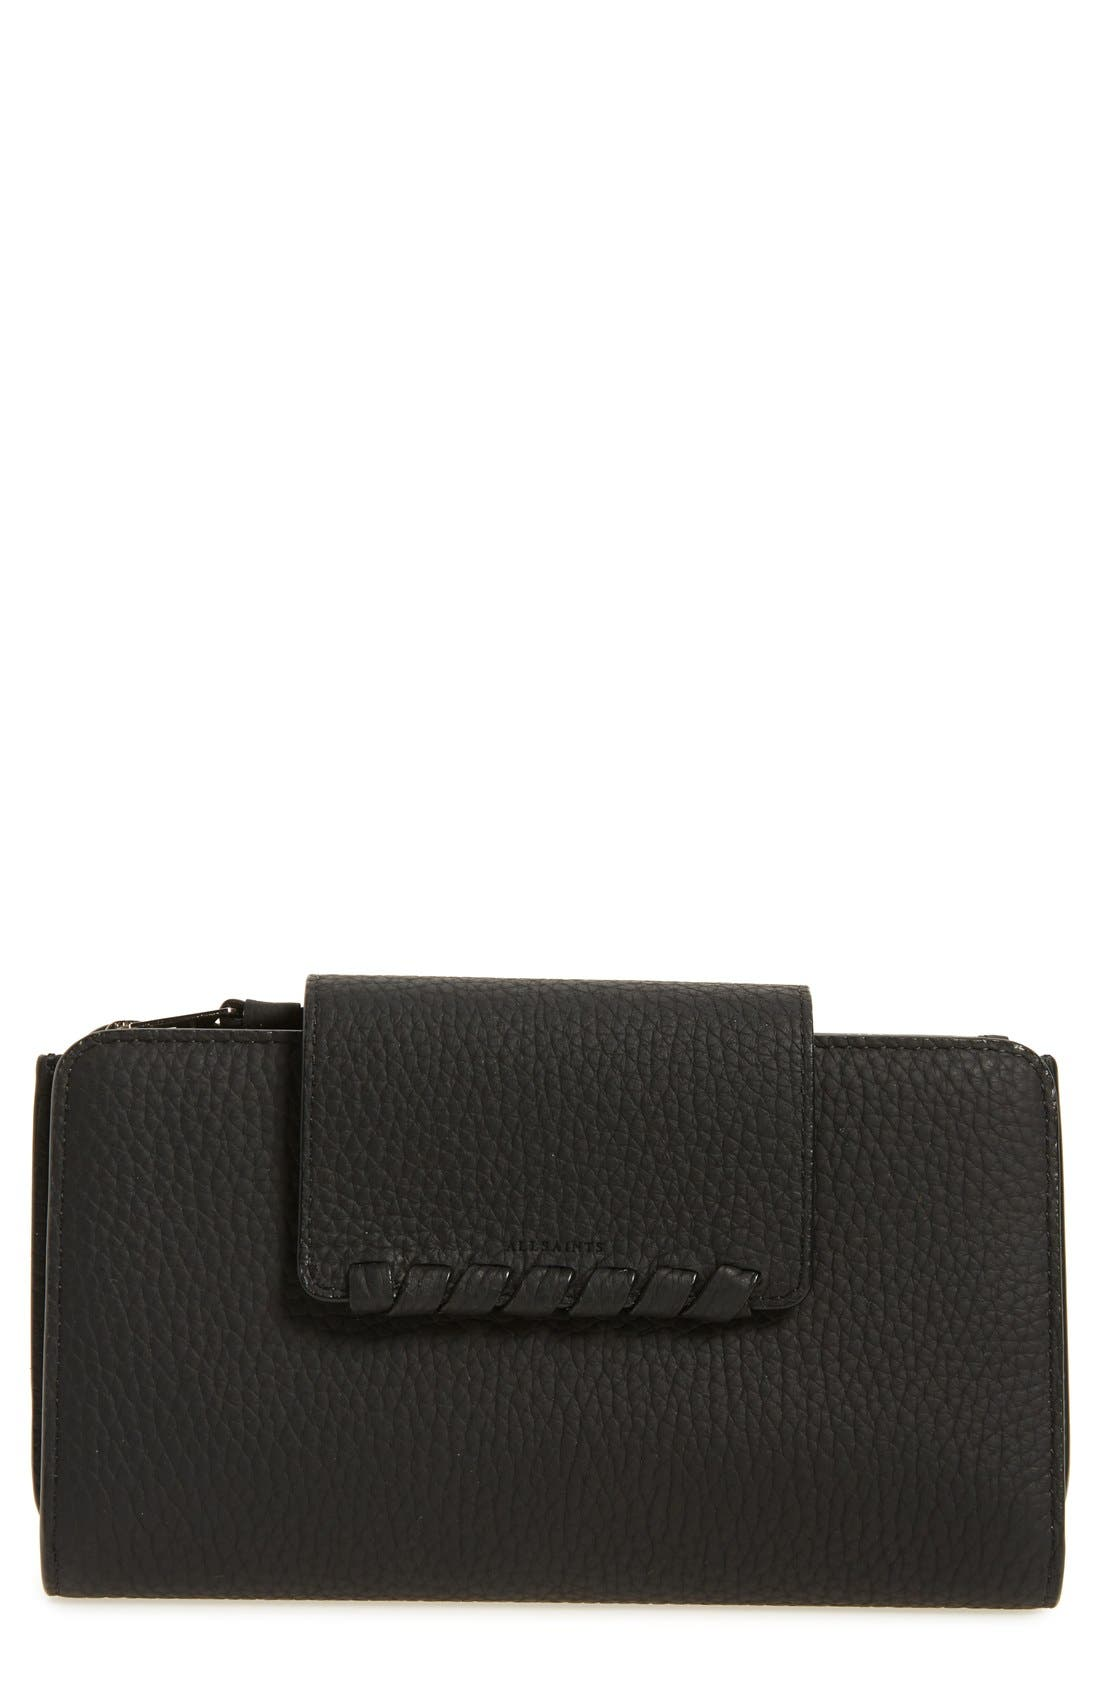 Kita Japanese Leather Wallet,                         Main,                         color, 001